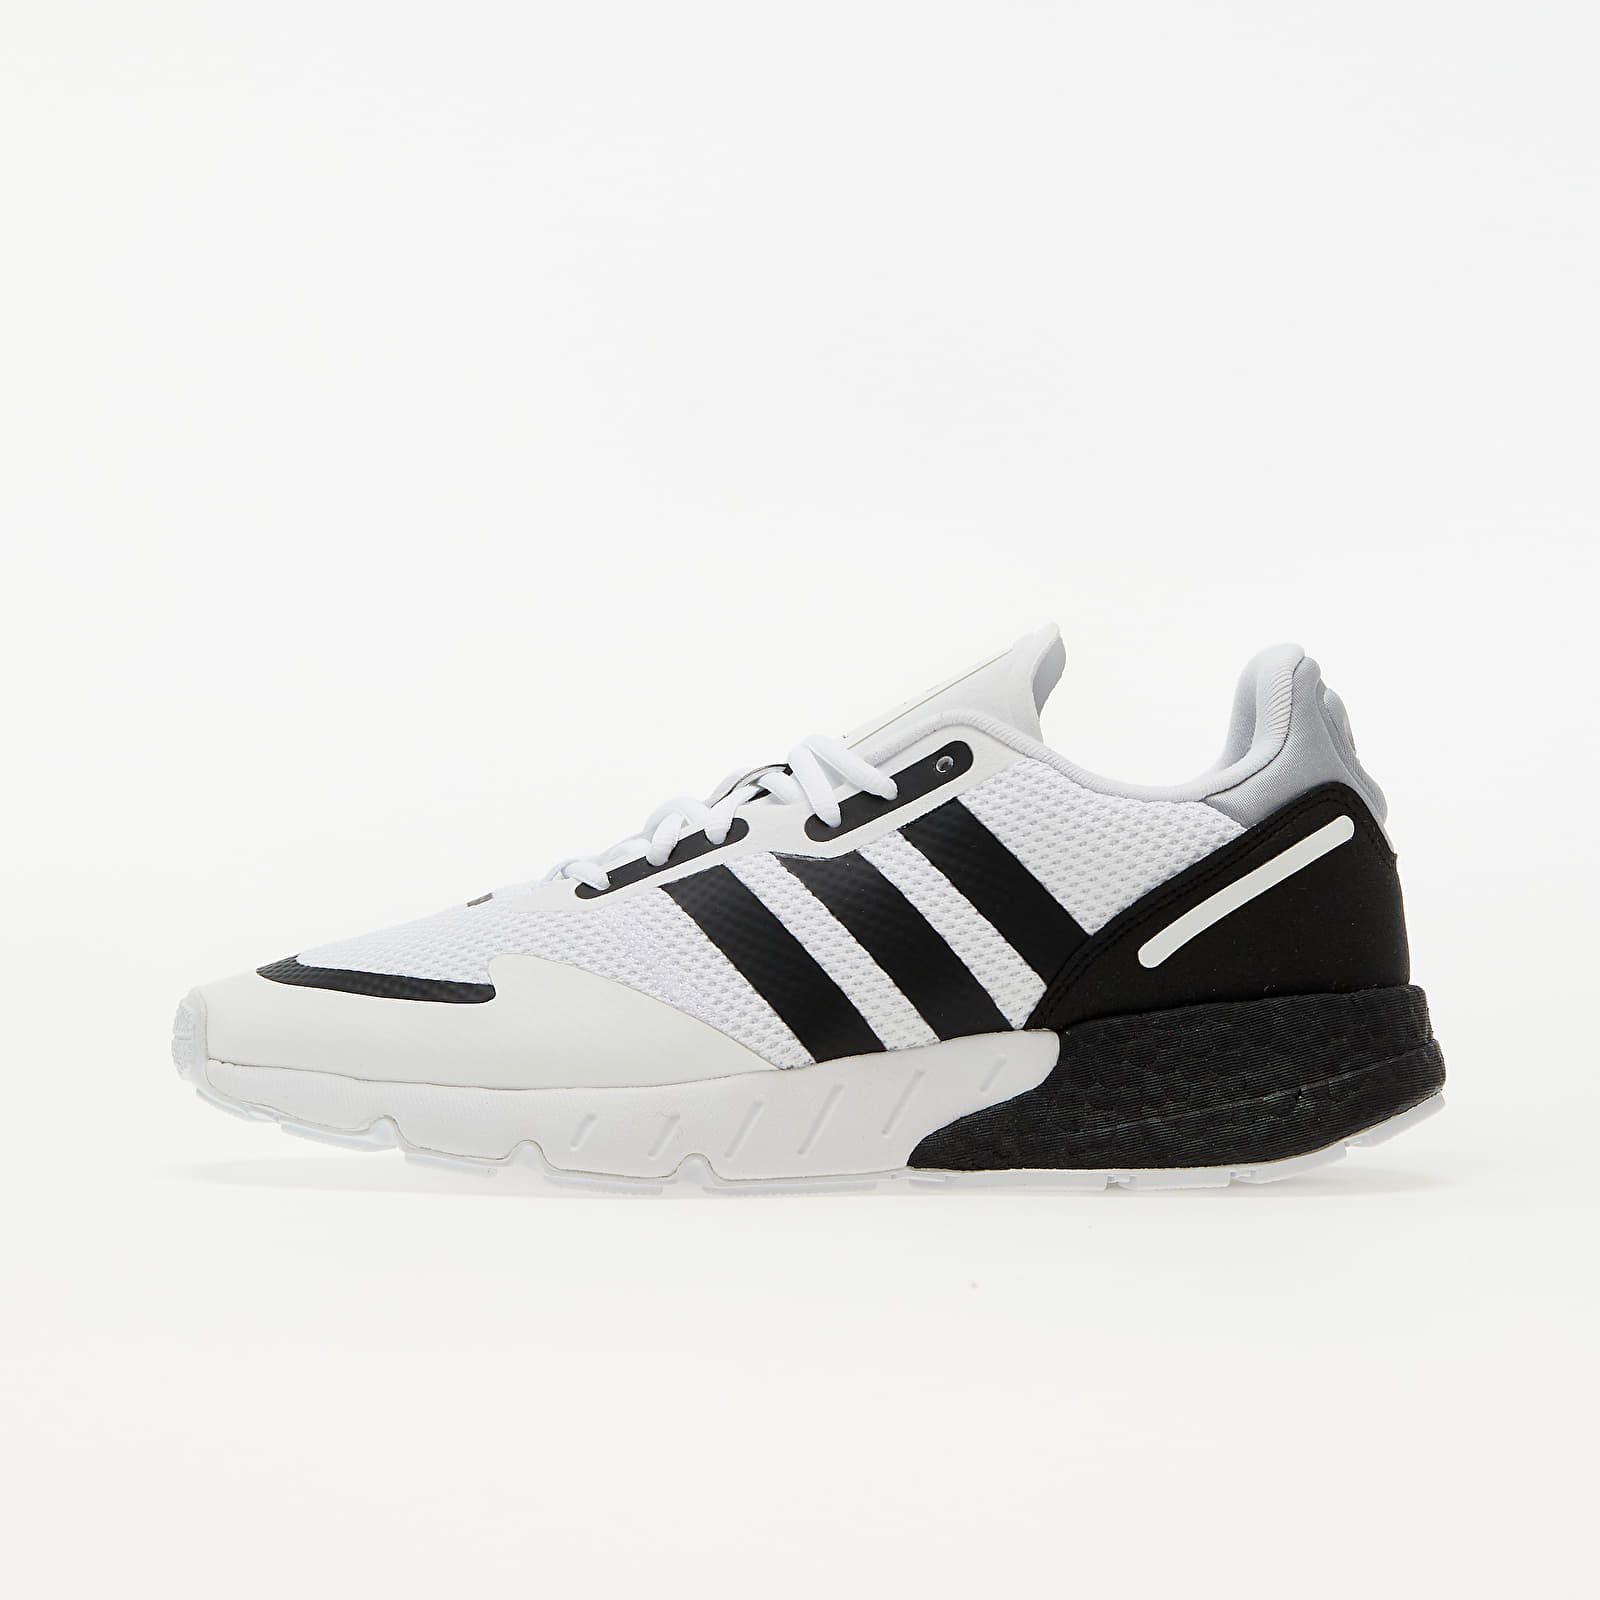 adidas ZX 1K Boost Ftw White/ Core Black/ Halo Silver EUR 44